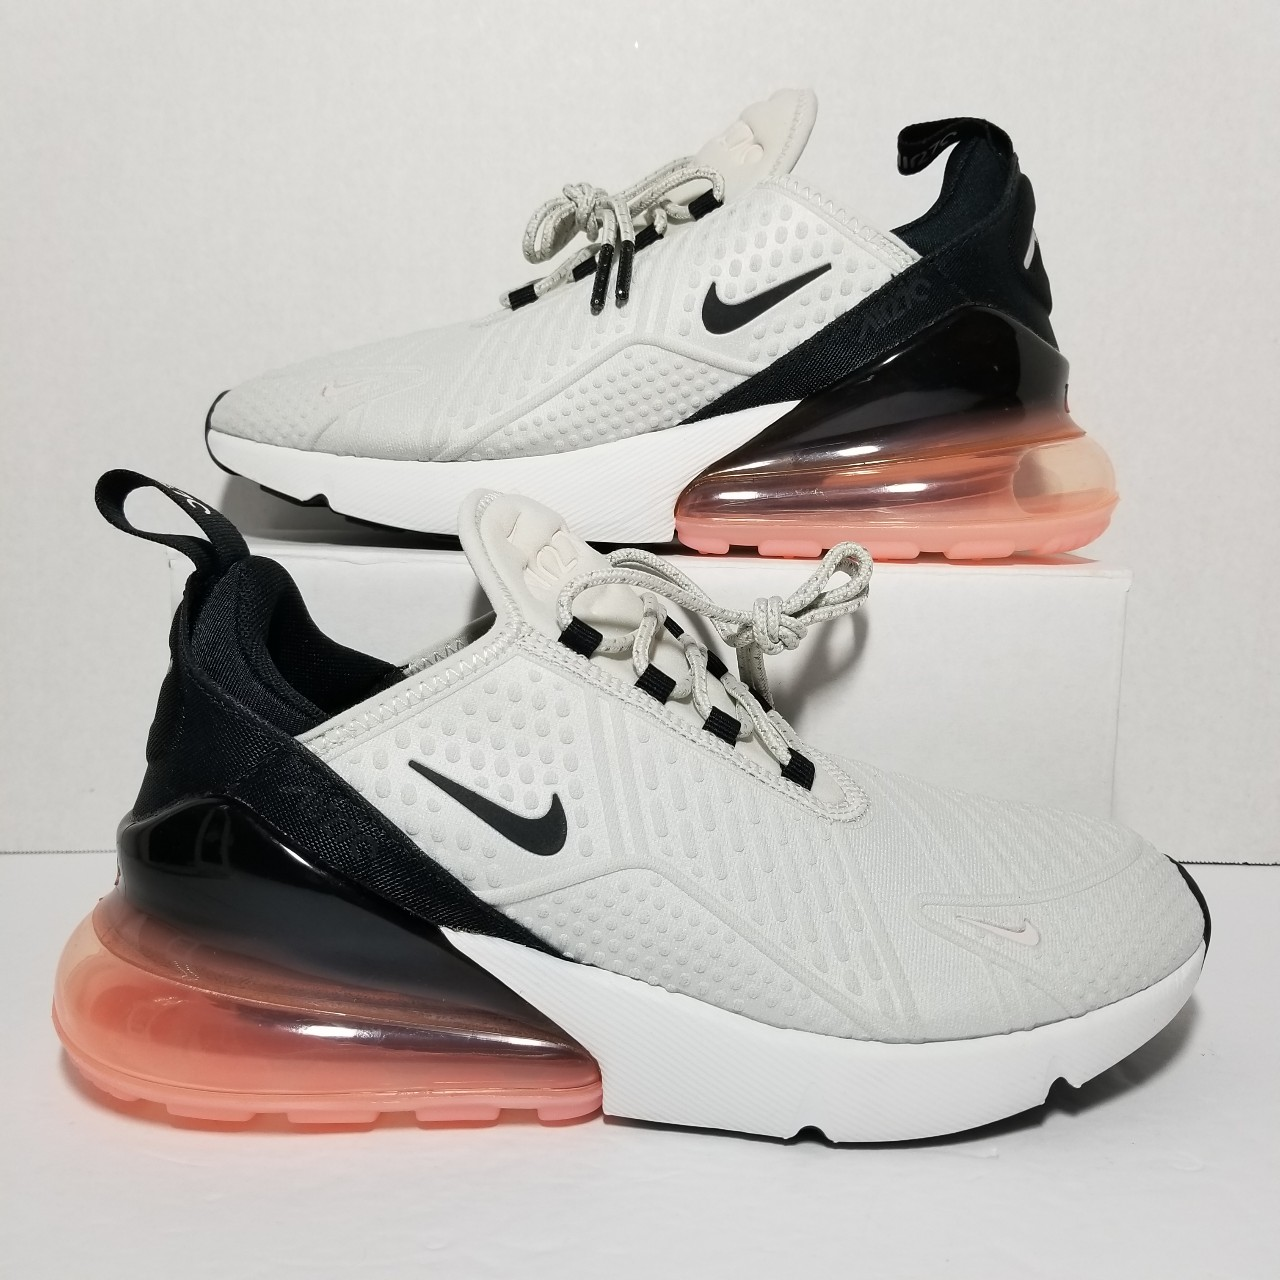 Details about New Nike Air Max 270 SE Women's Light Bone Storm Pink Black AR0499 002 Size 12